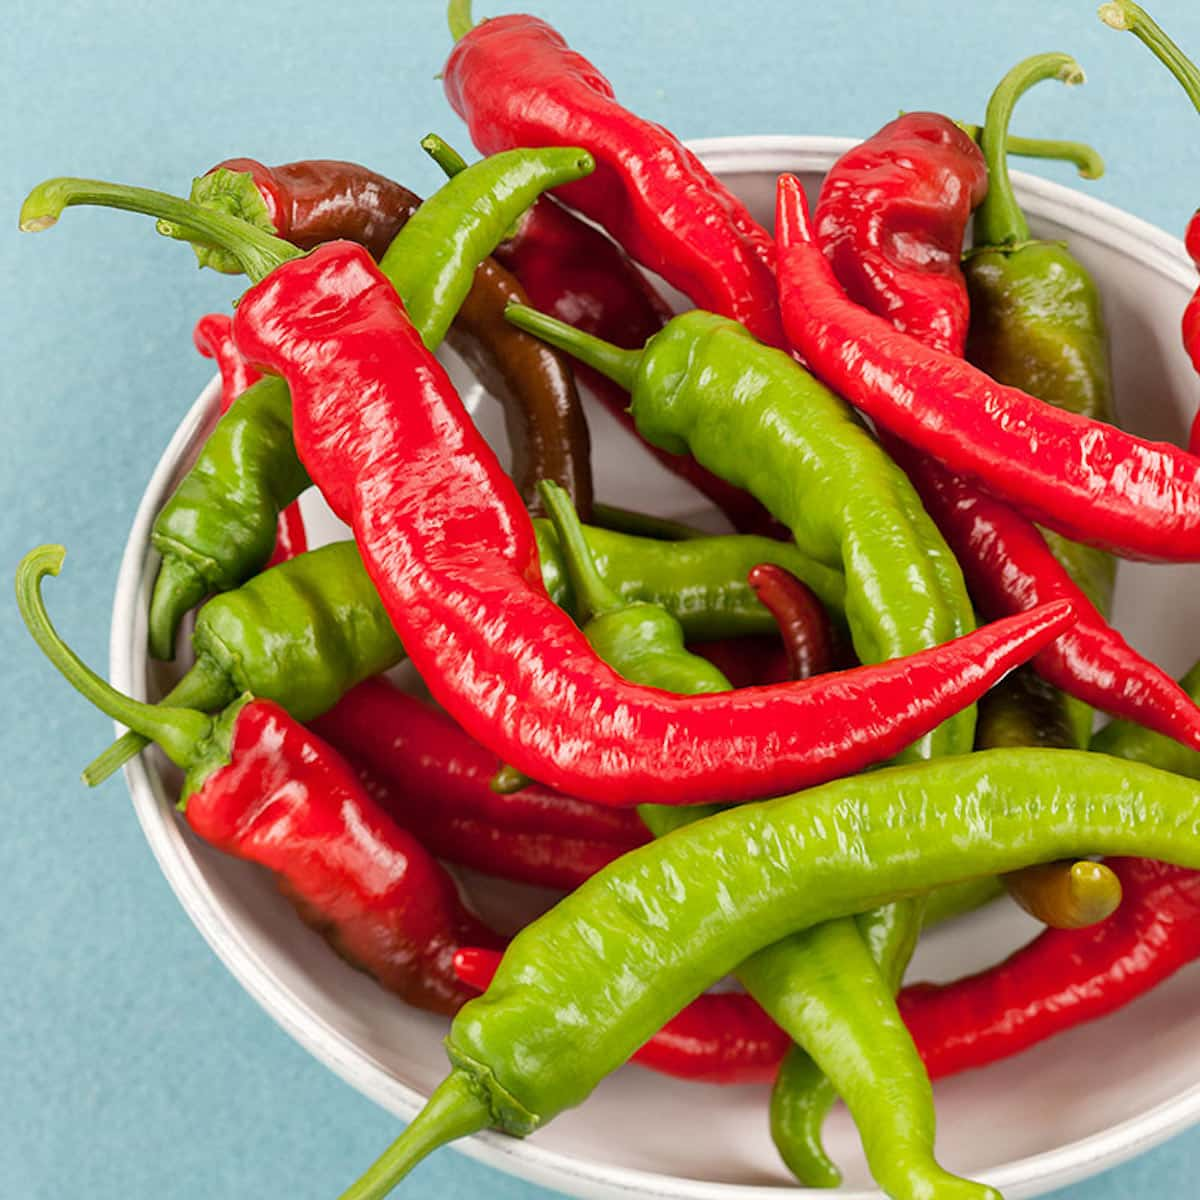 Big Peppers Guide: The Giants Of The Pepper Scale